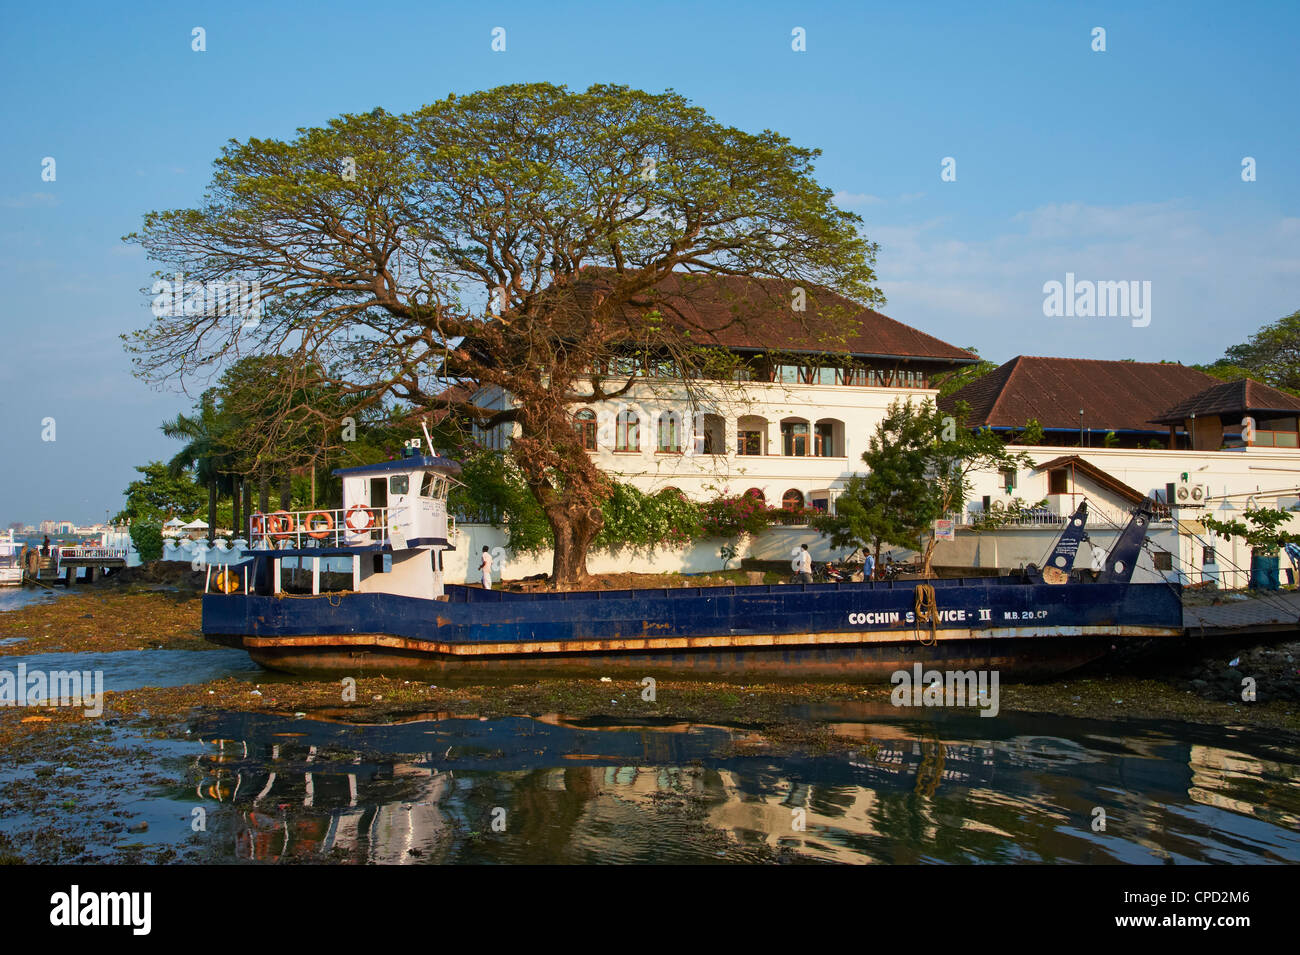 Old colonial construction, Fort Cochin (Kochi), Kerala, India, Asia - Stock Image